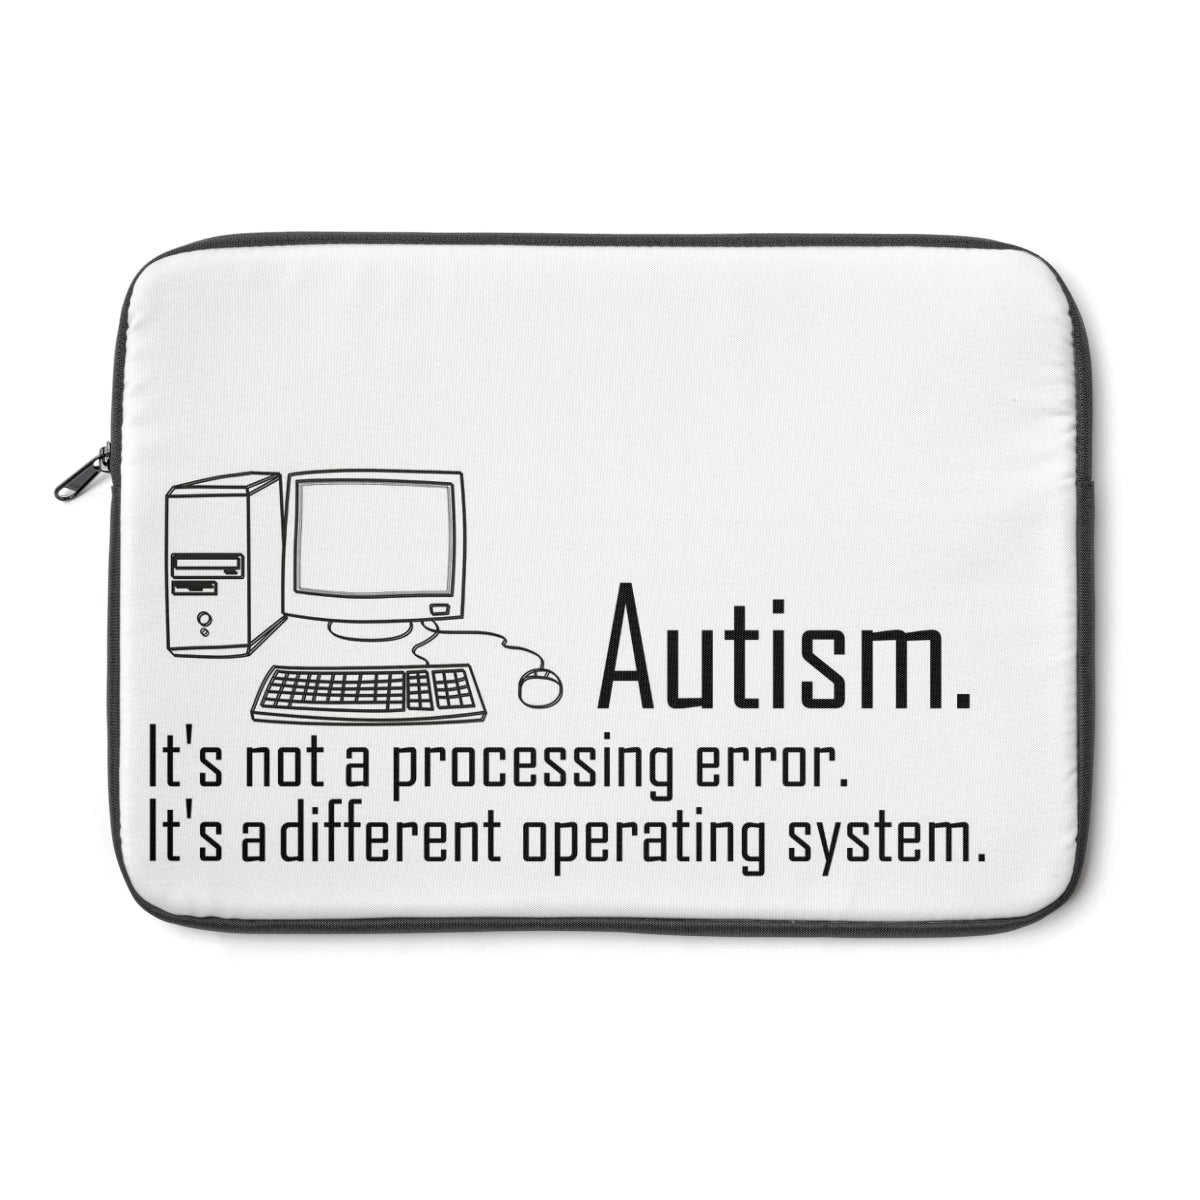 Autism - Laptop Sleeve